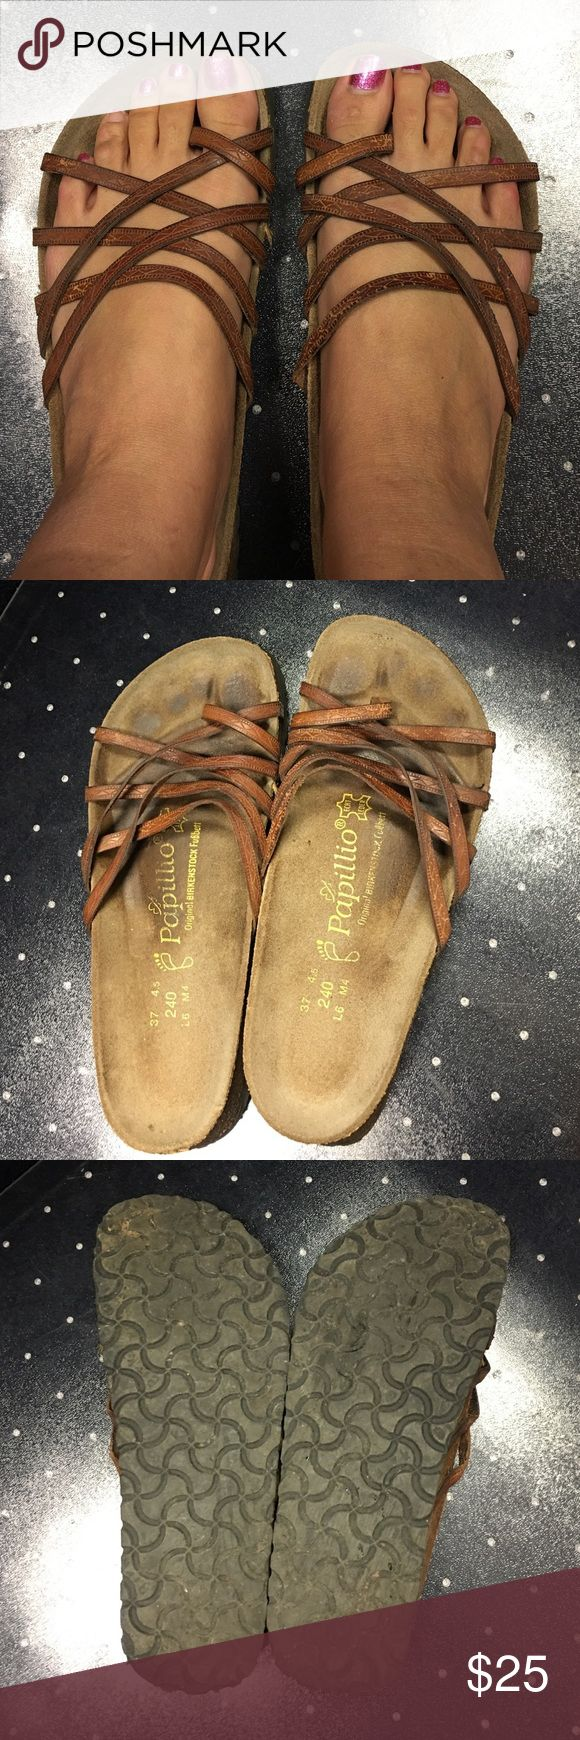 Papillio Birkenstock Sandals!! Used but still wearable and in good condition. They are Birkenstock sandals and the style is papillon and it is a dark brown. None of the straps are ripped! Birkenstock Shoes Sandals